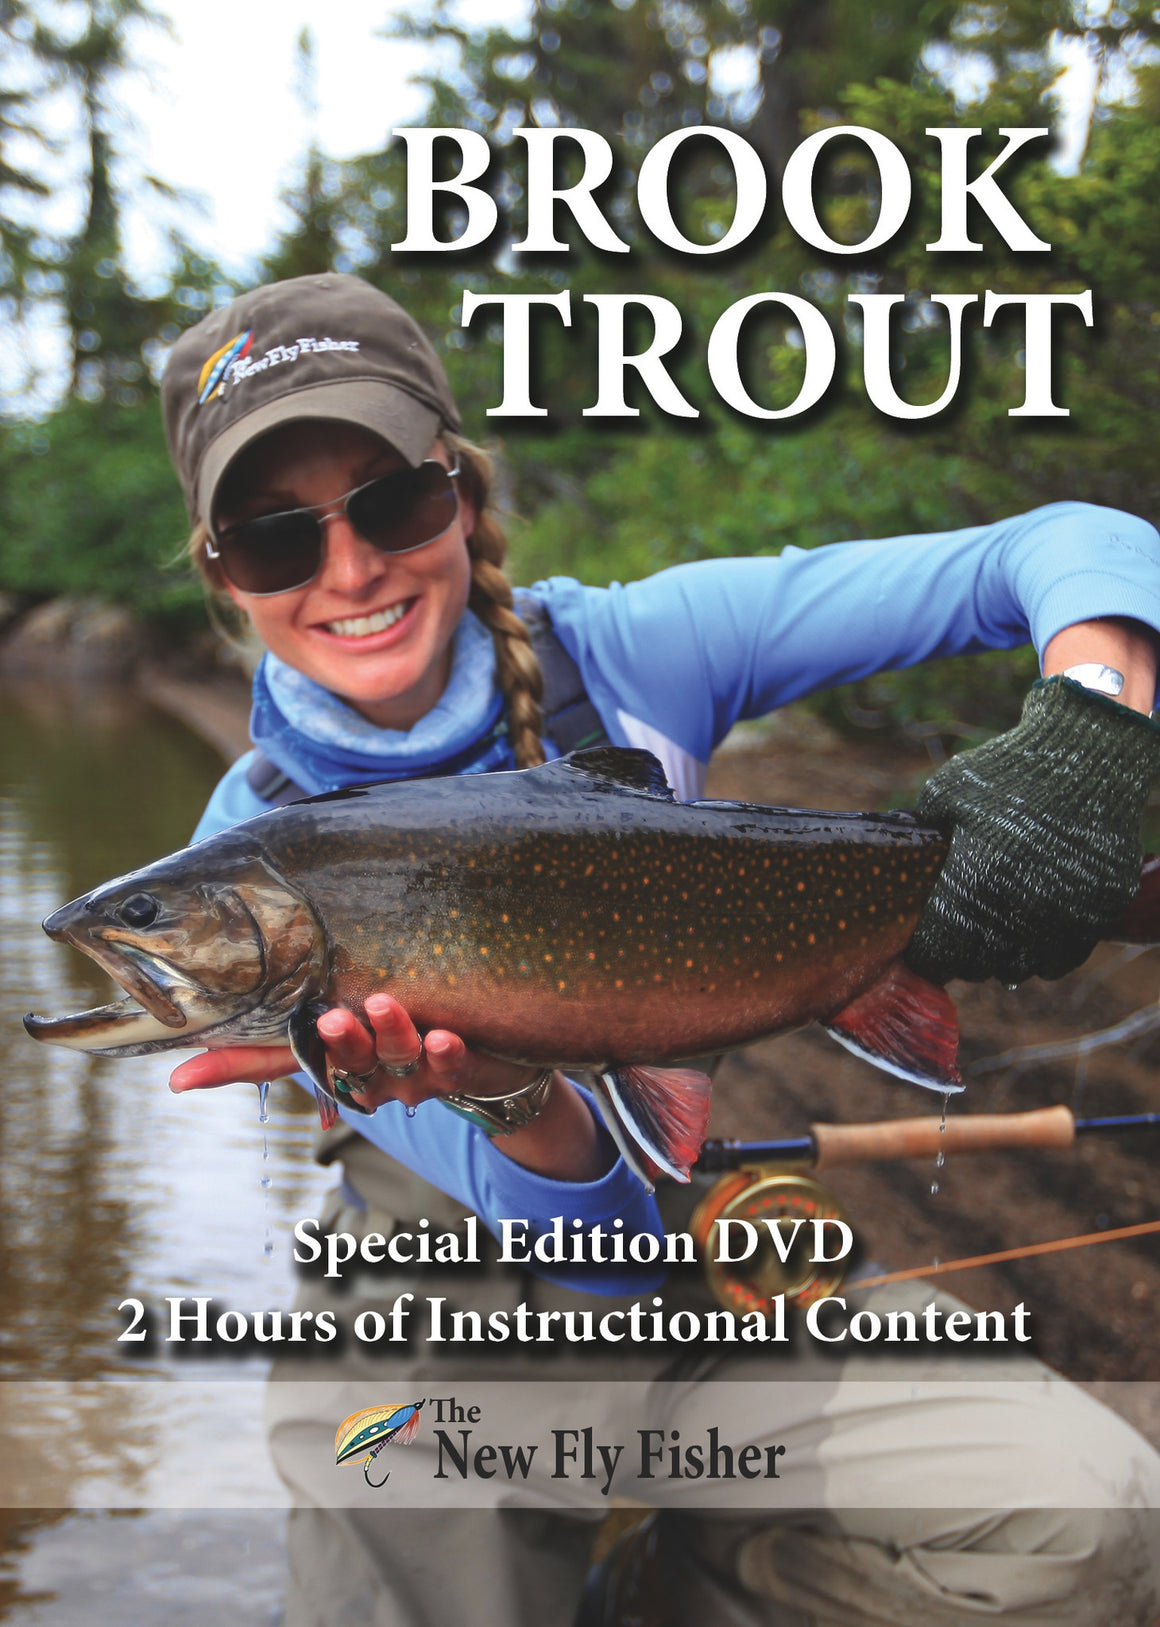 The New Fly Fisher - Brook Trout Special Edition